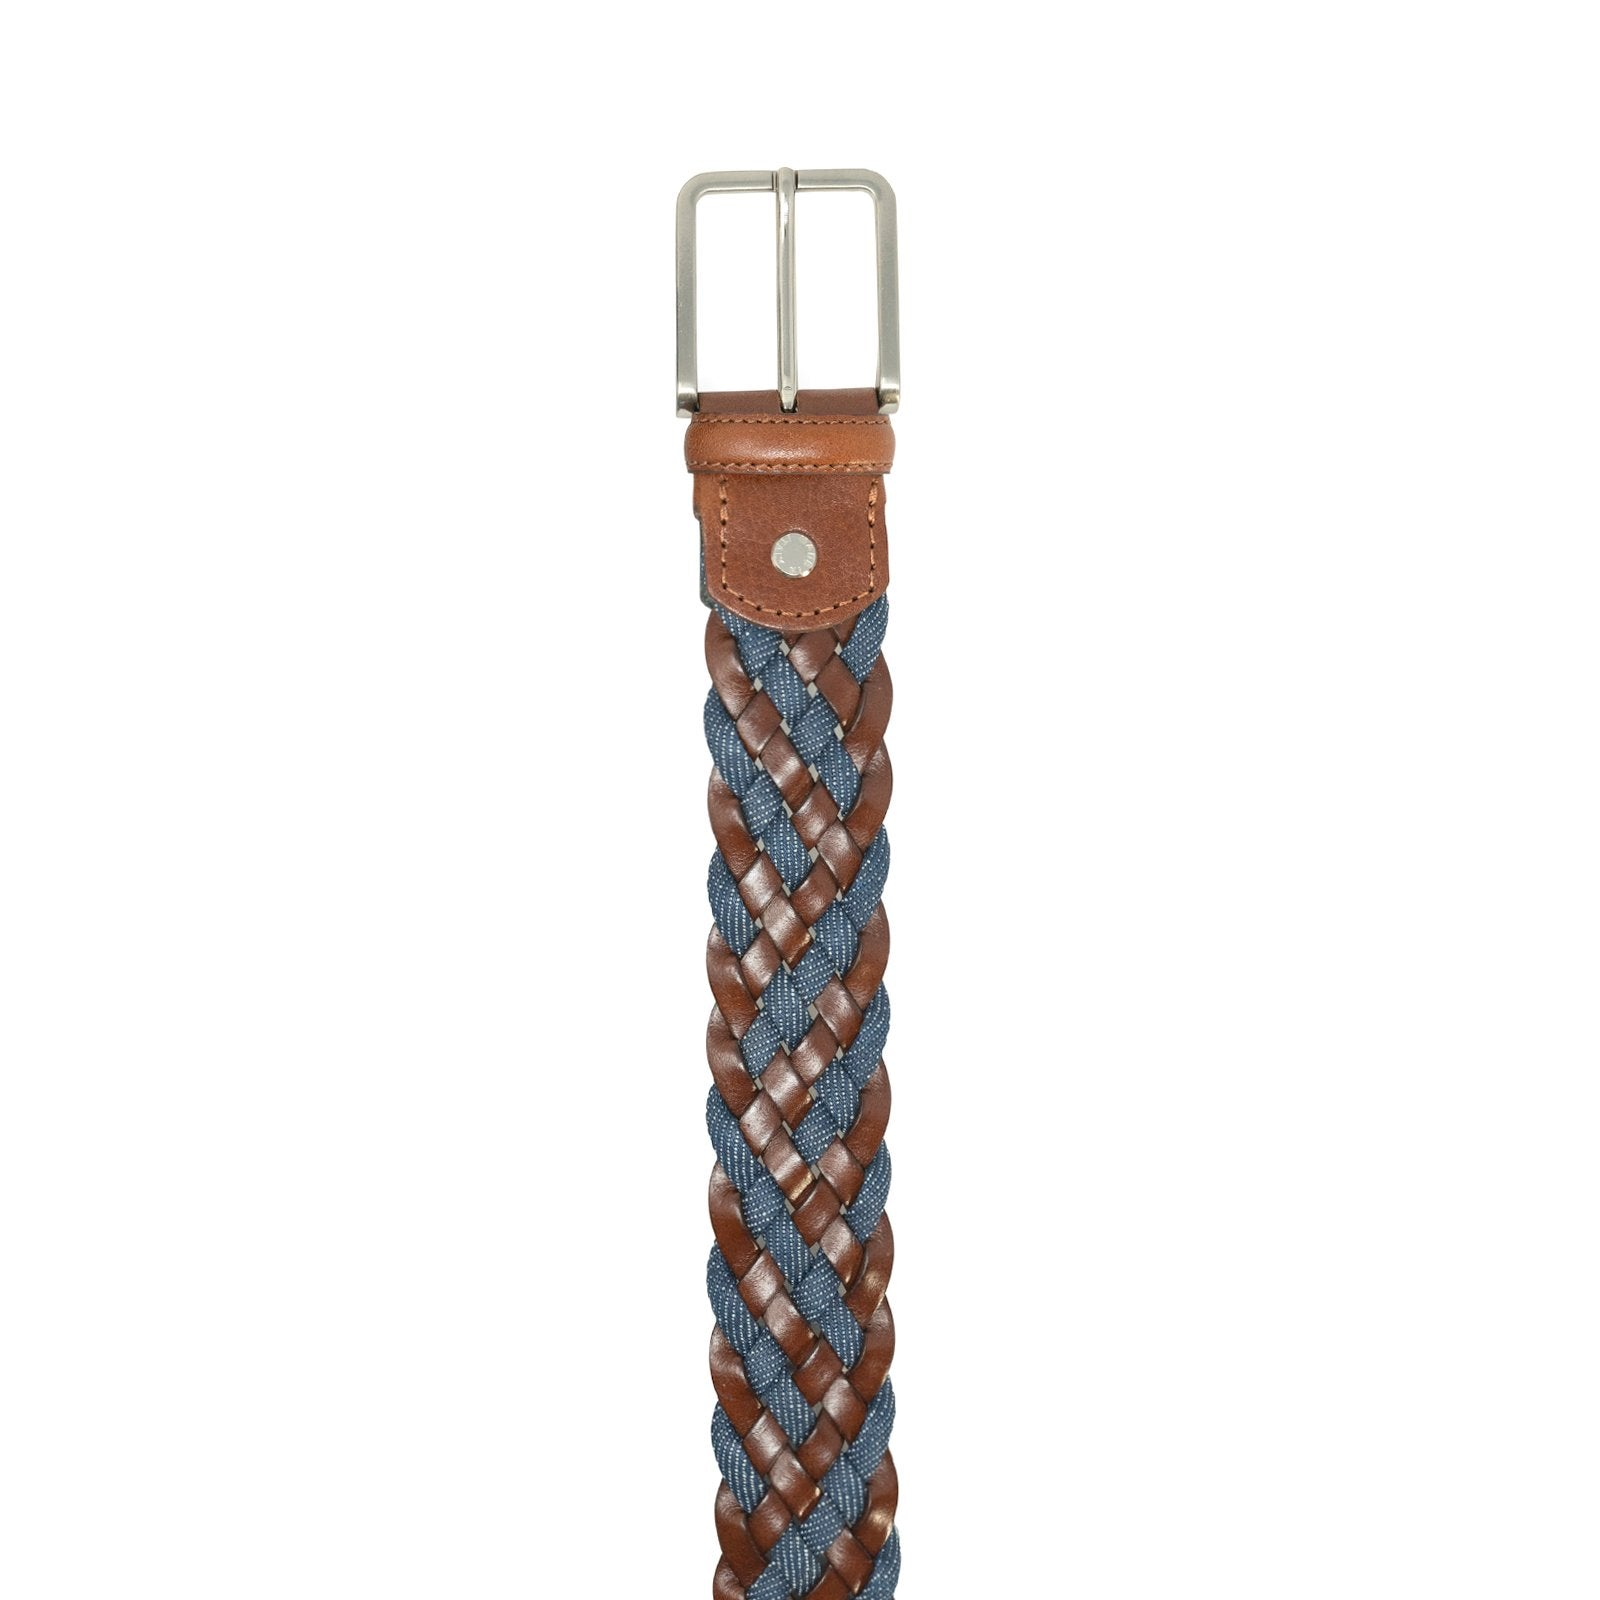 Unisex Braided Leather Belt in Cuoio - Jennifer Tattanelli